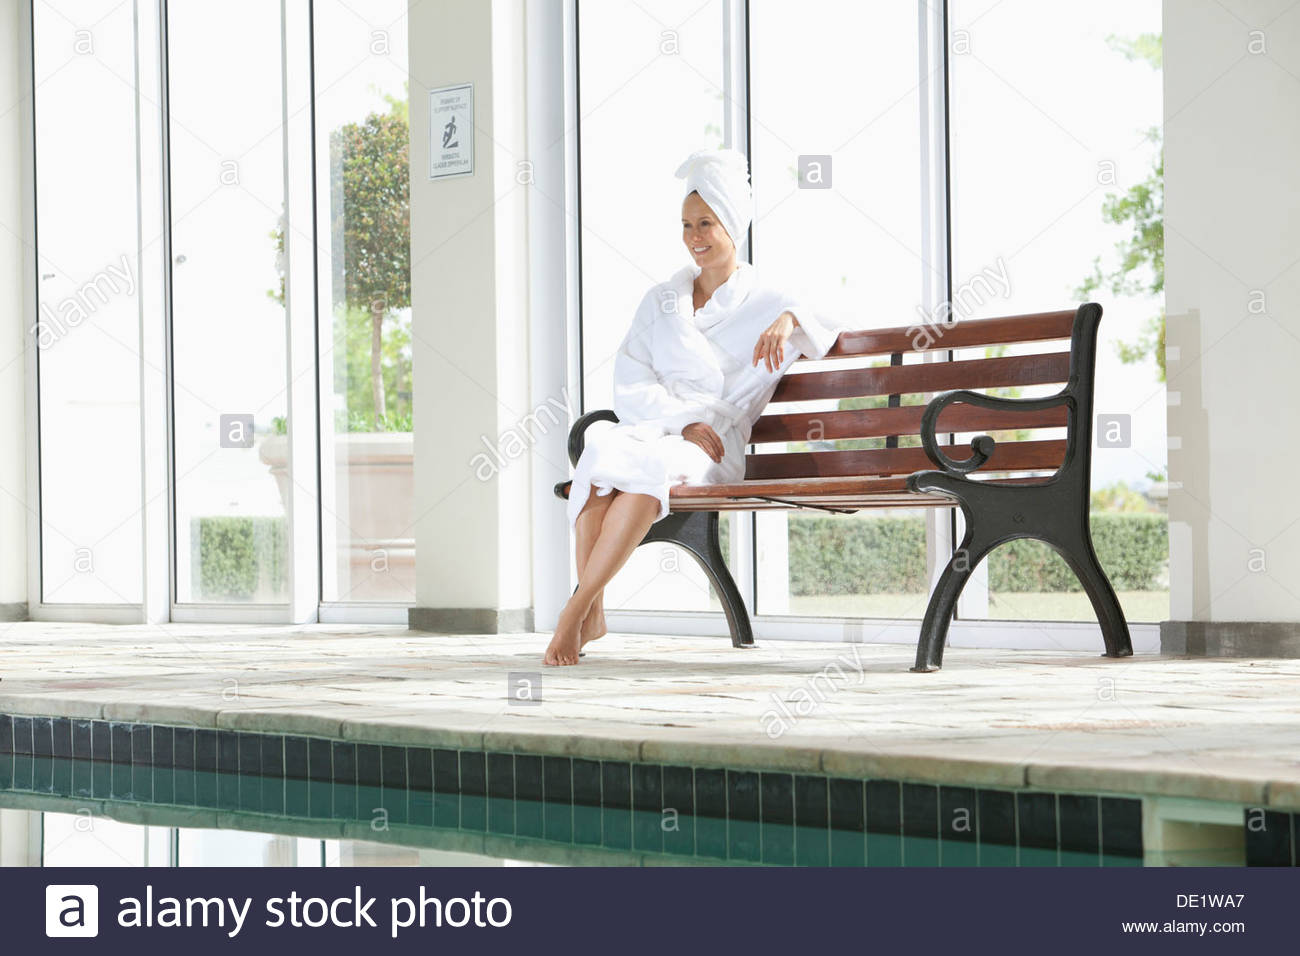 Portrait of smiling woman in bathrobe sitting on bench poolside at spa - Stock Image